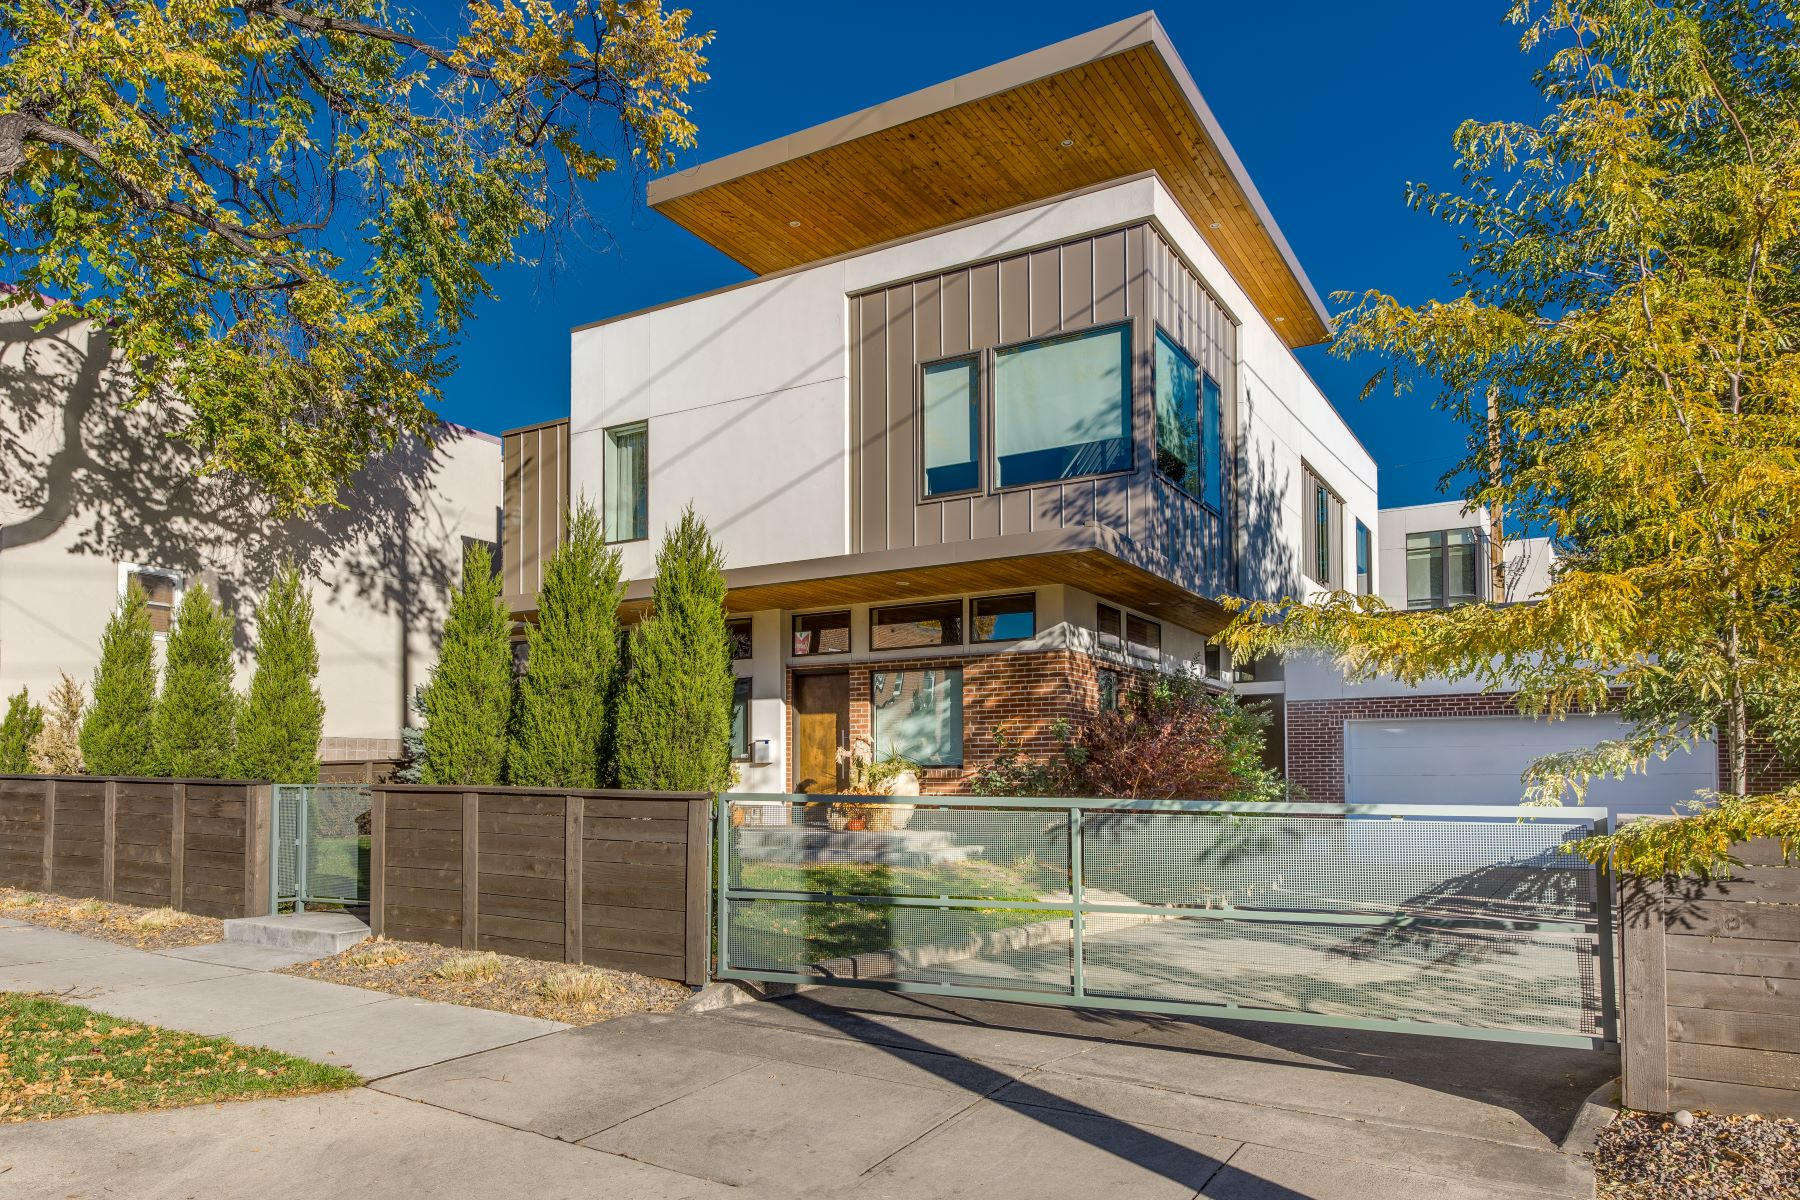 Single Family Home for Active at 2345 West 32nd Avenue 2345 W 32nd Ave Denver, Colorado 80211 United States